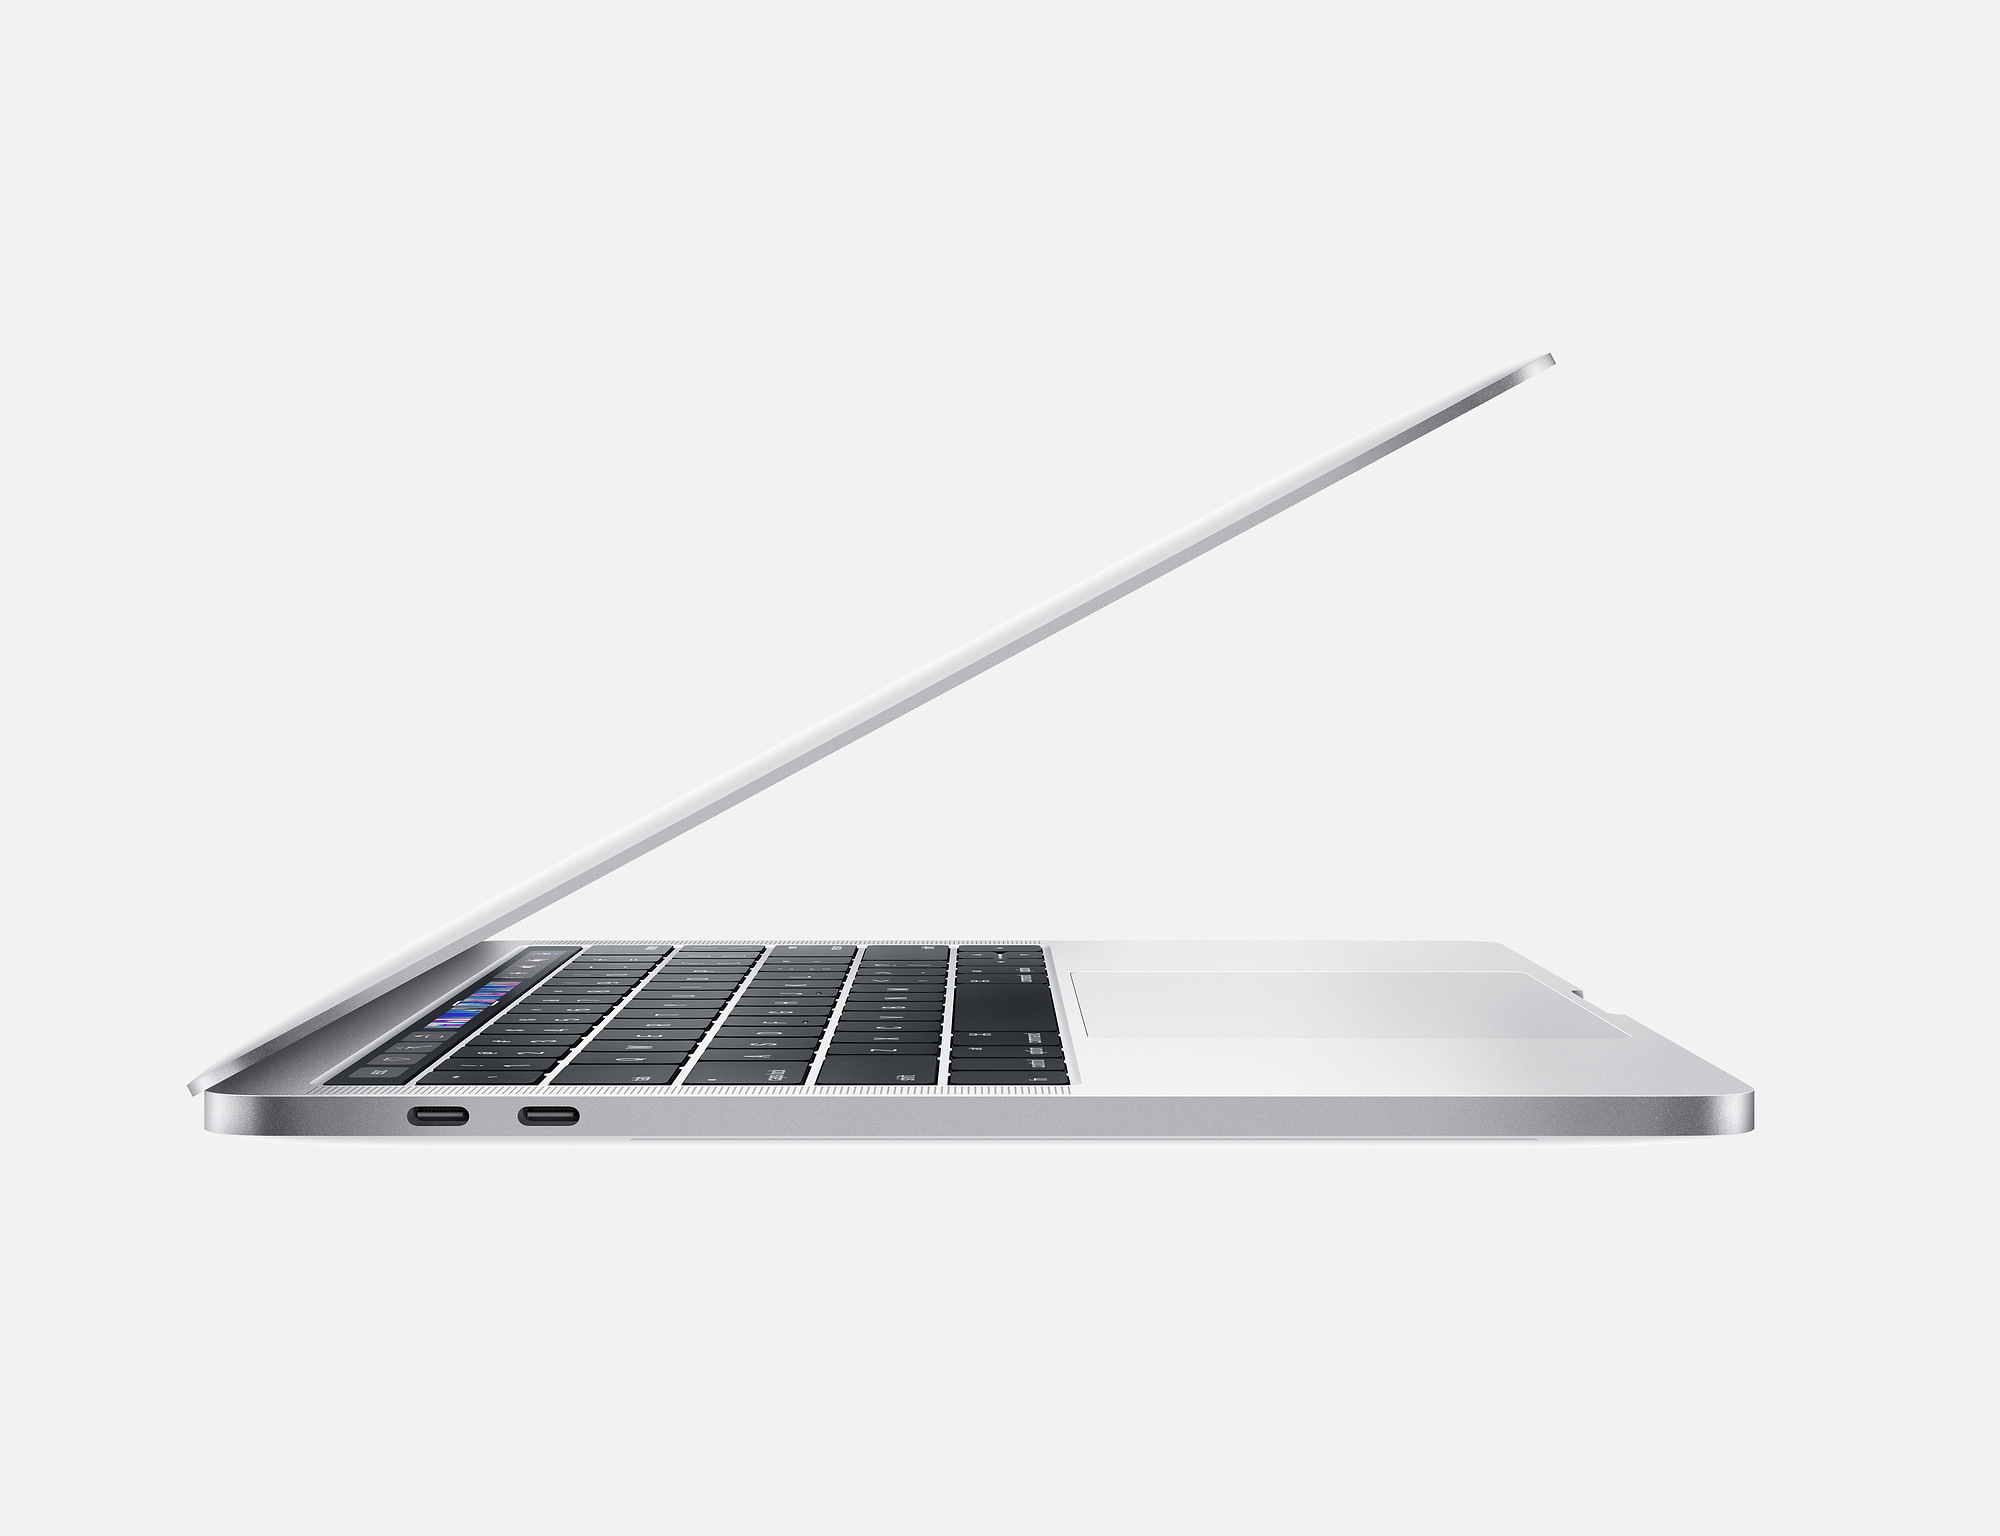 MacBook Pro 13 inç Touch Bar 1.4GHz QC i5 8GB RAM 256GB SSD Gümüş MUHR2TU/A